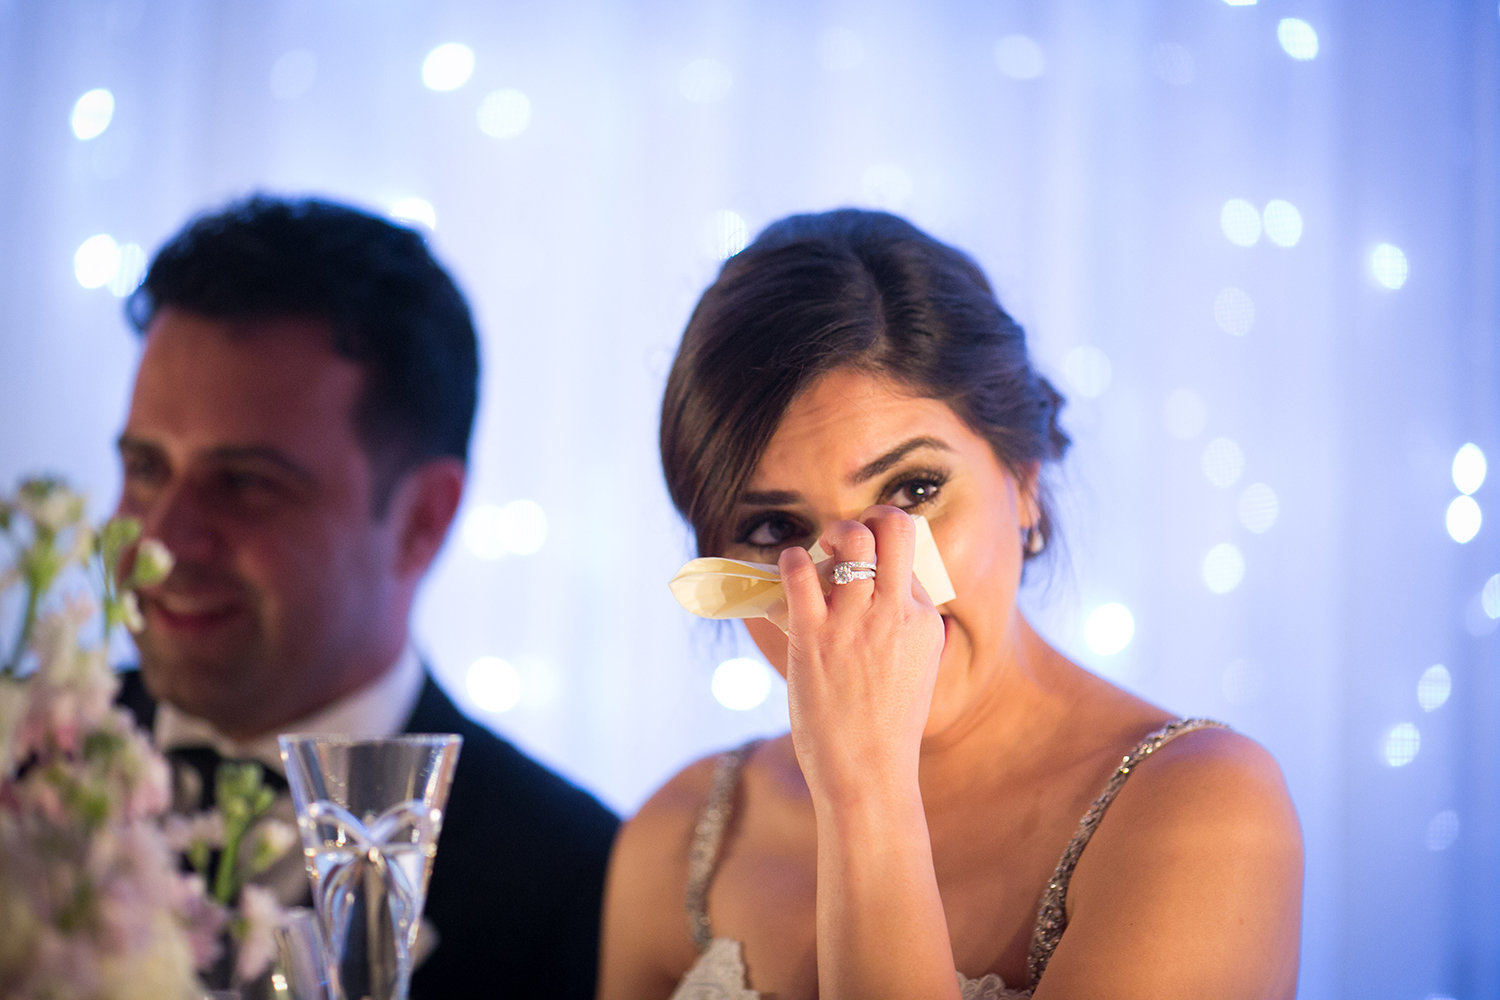 A bride tears up during her fathers speech